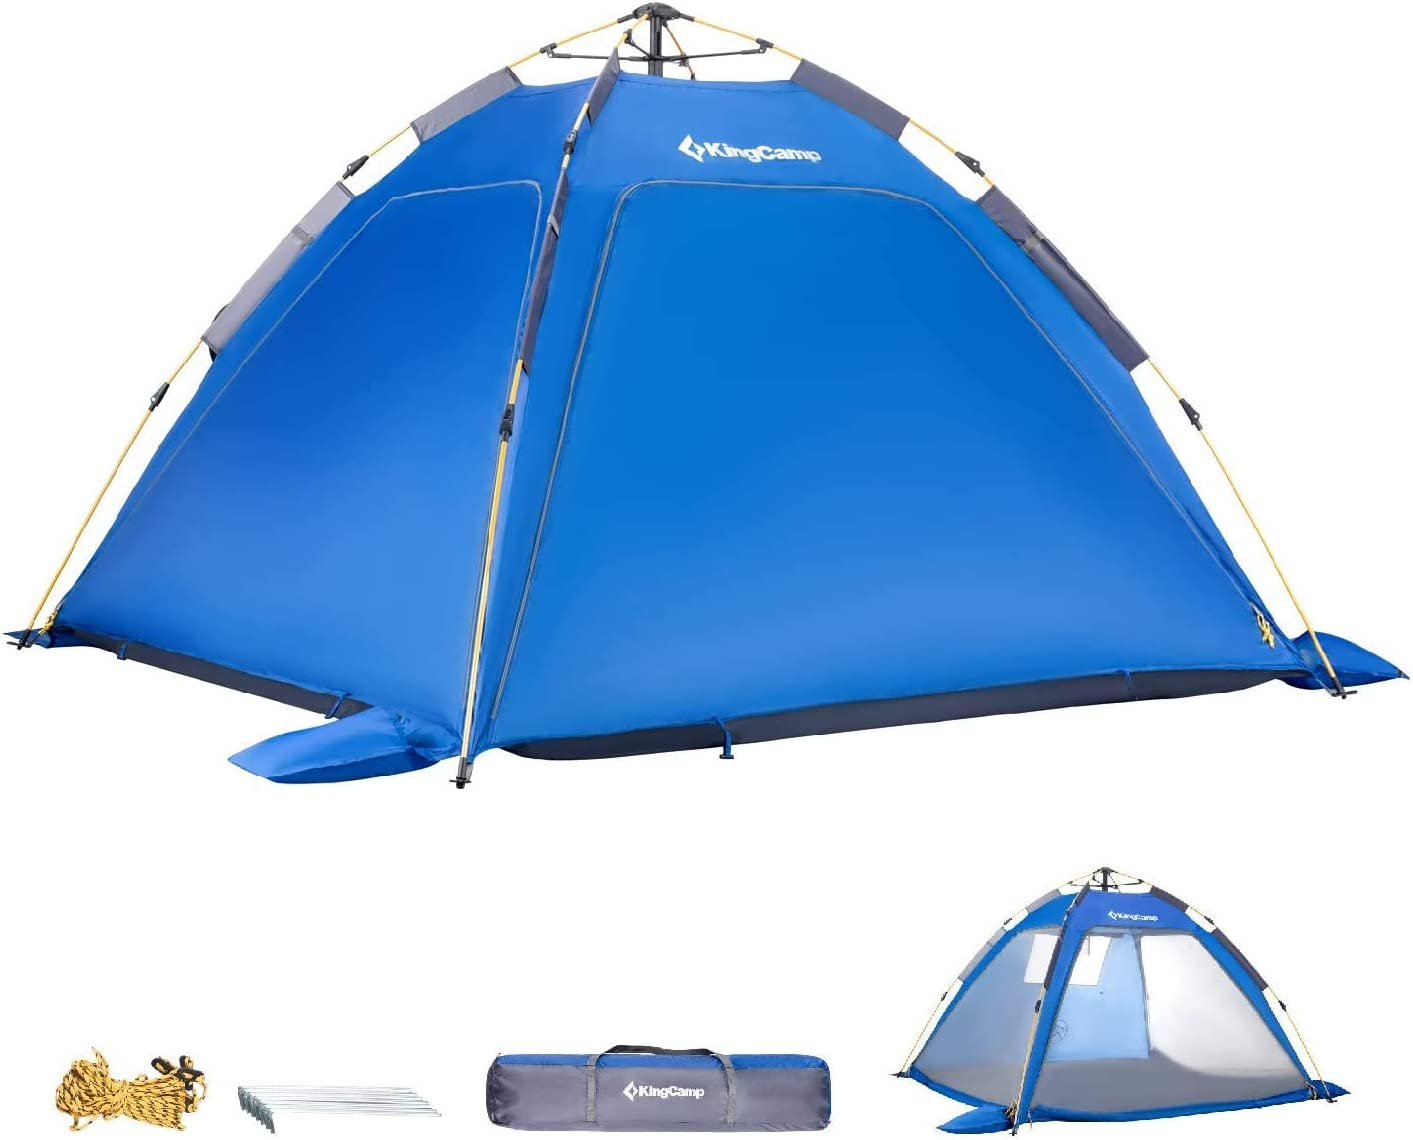 KingCamp Quick up 2-3 Person Camping Mesh Beach Tent, Sun Shelter UPF 50 , Mosquito Net Screen Room Tents